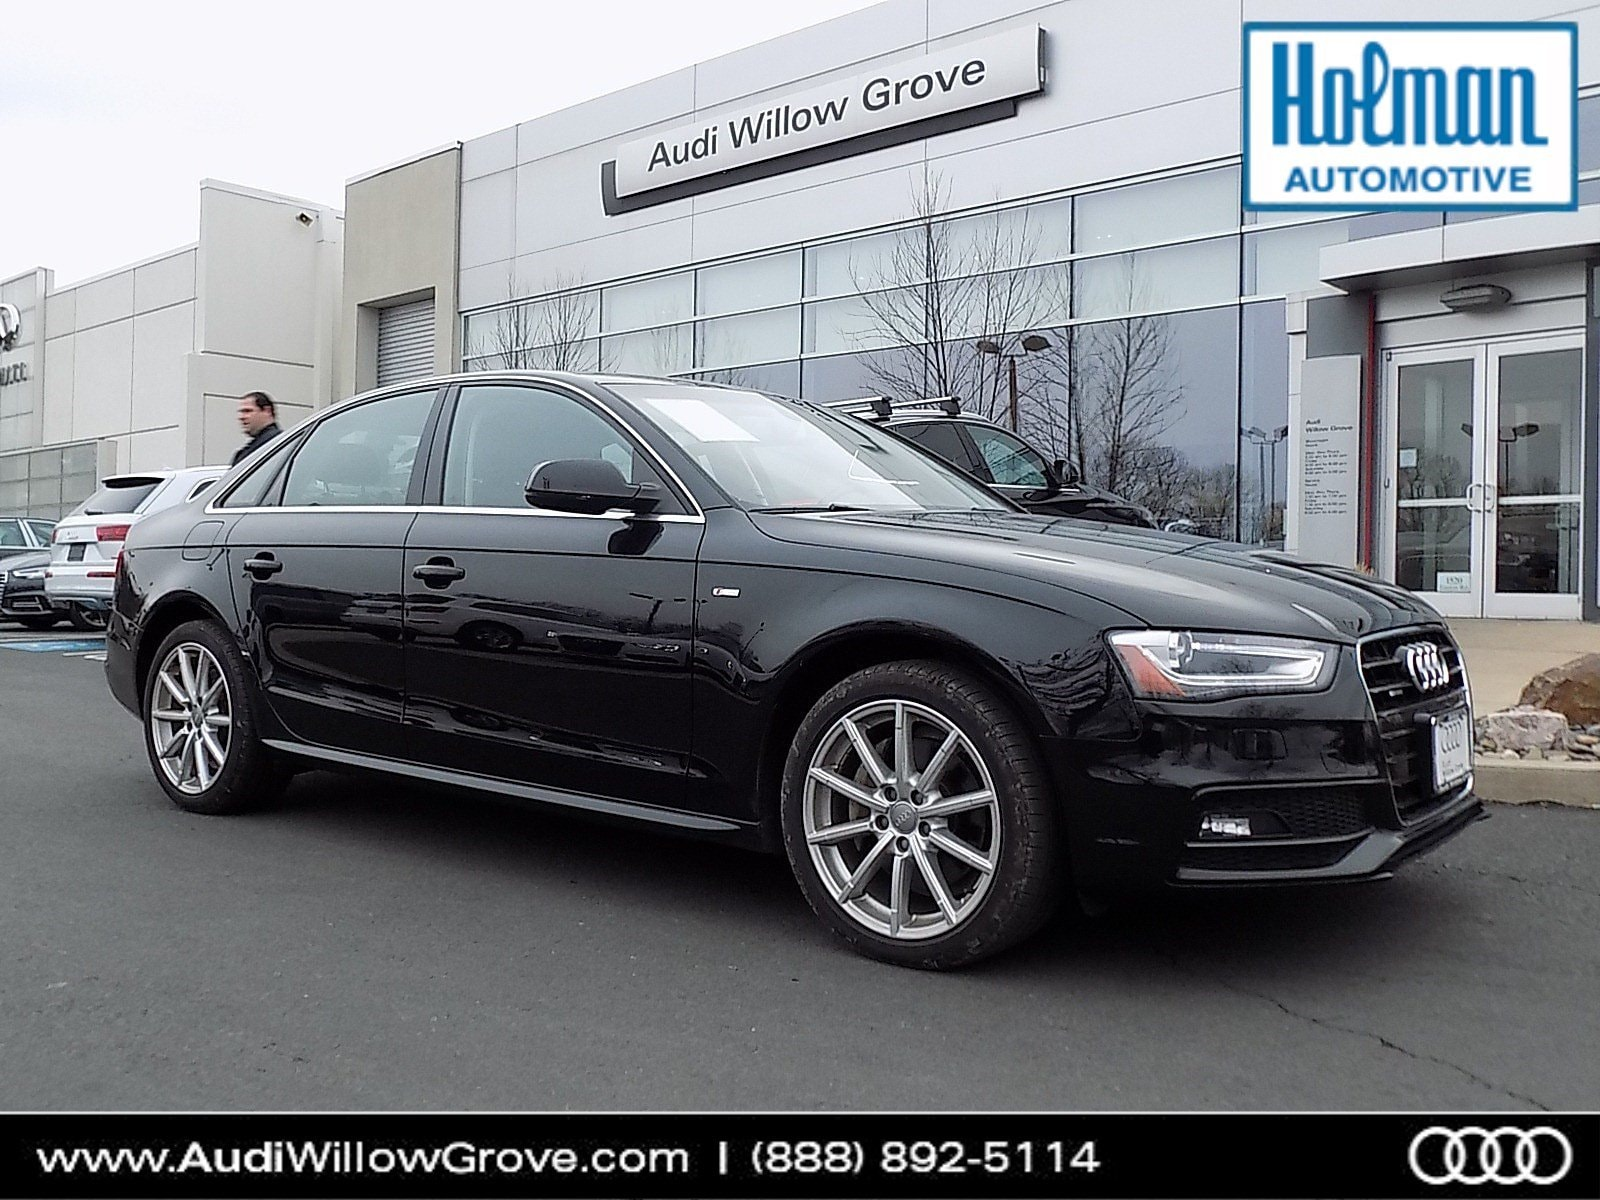 audi willow grove vehicles for sale in willow grove pa 19090. Black Bedroom Furniture Sets. Home Design Ideas